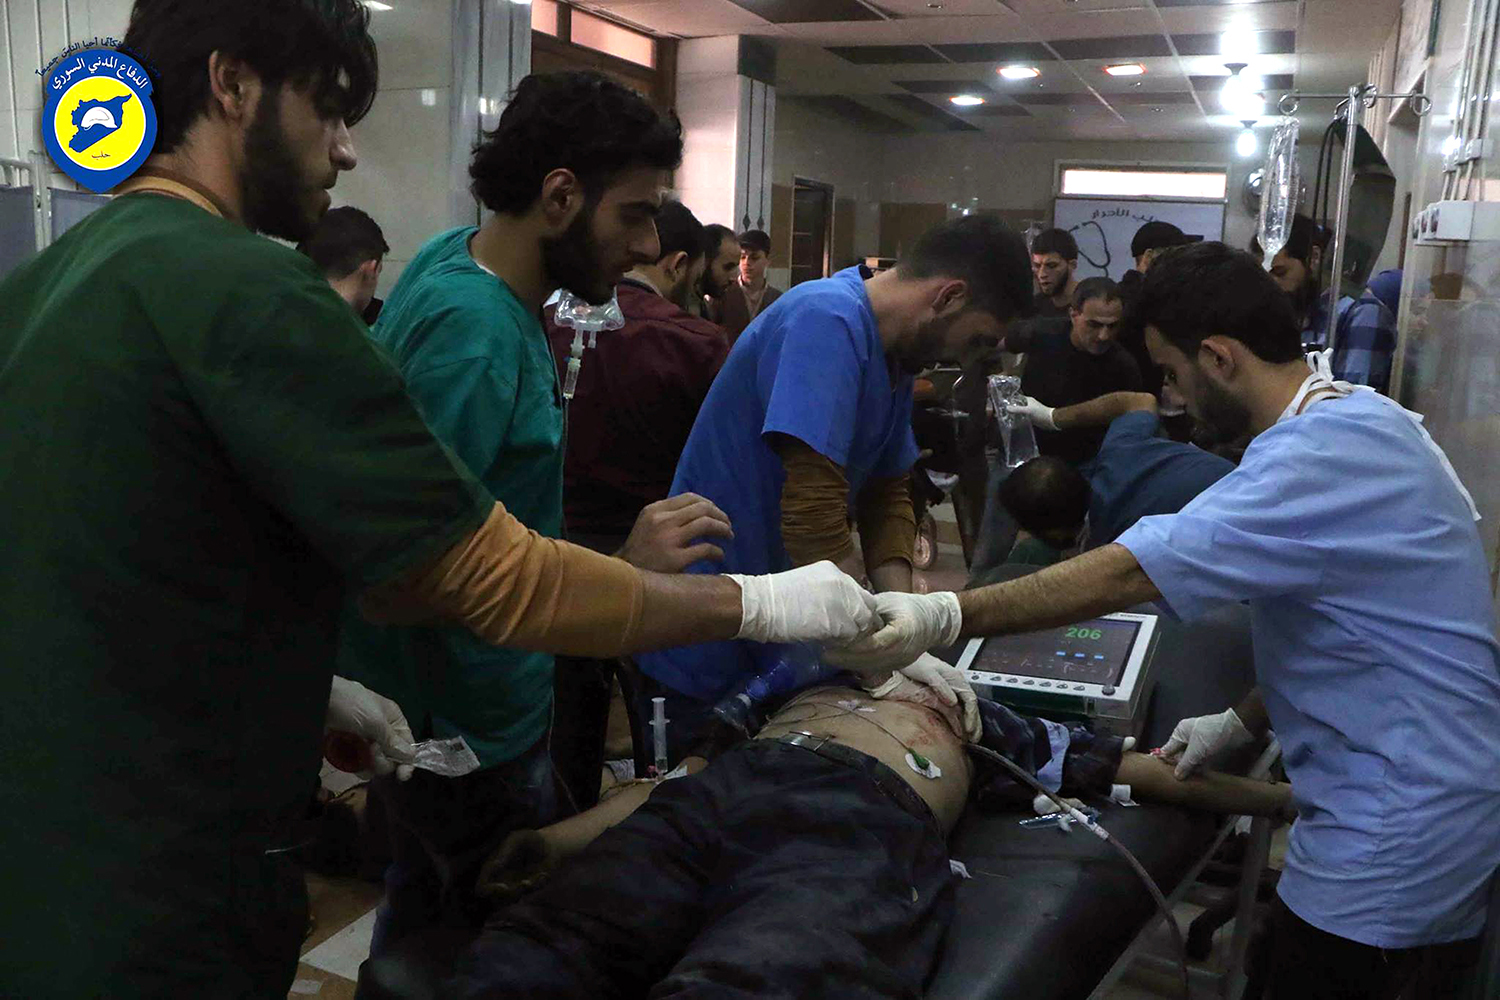 "In this photo provided by the Syrian Civil Defense group known as the White Helmets, shows wounded receiving treatment at a local clinic after airstrikes hit Aleppo, Syria, Sunday, Sept. 25, 2016. A broad coalition of Syrian rebels denounced international negotiations for peace as ""meaningless"" on Sunday, as the U.N. Security Council prepared to convene an emergency meeting about the spiraling violence in Syria. (Syrian Civil Defense White Helmets via AP)"